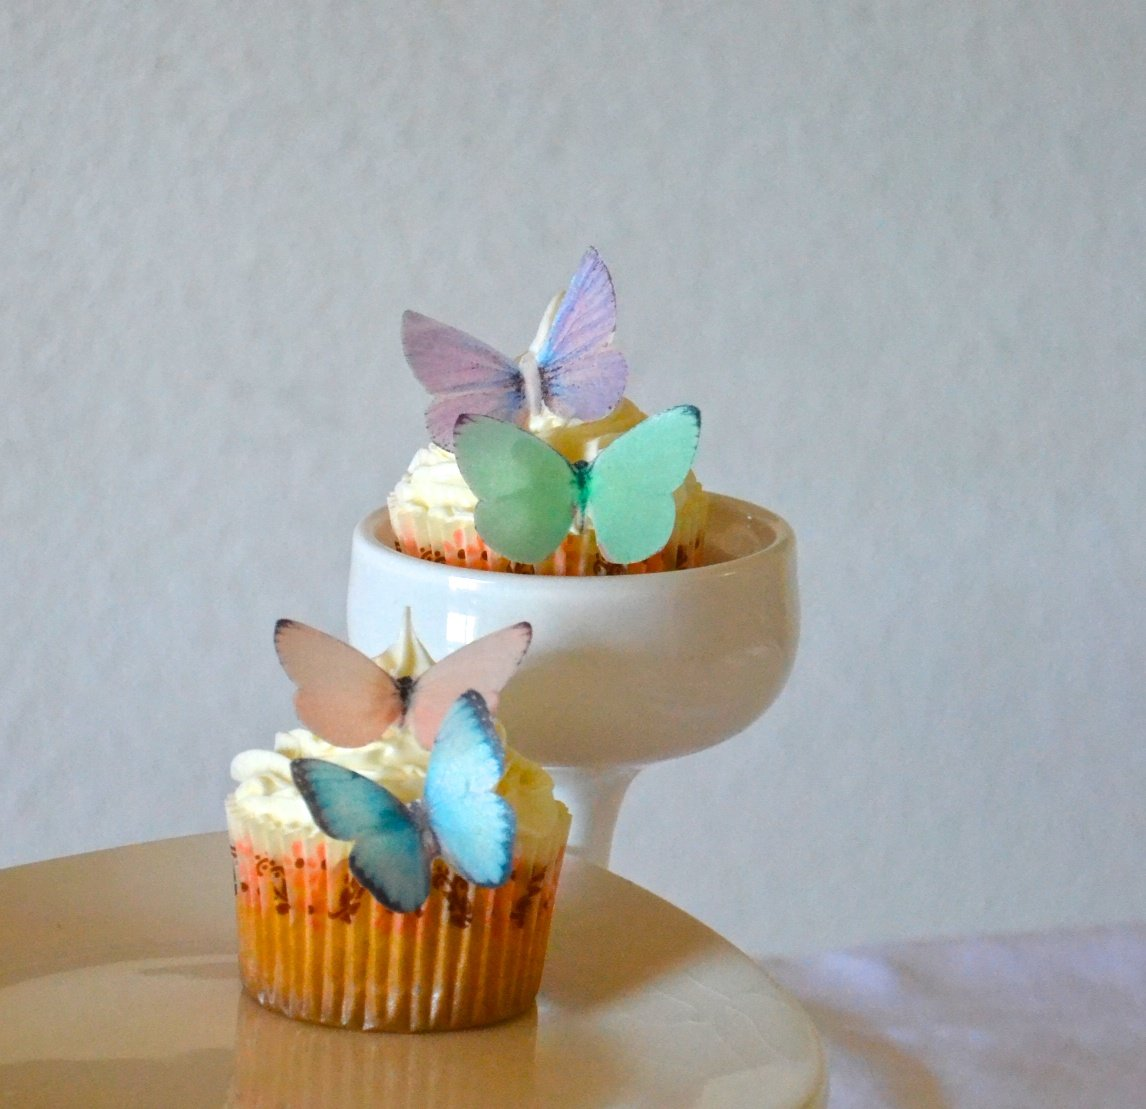 Edible Butterflies © - Small Assorted Pastel Set of 24 - Cake and Cupcake Toppers, Decoration by Sugar Robot Inc. (Image #2)